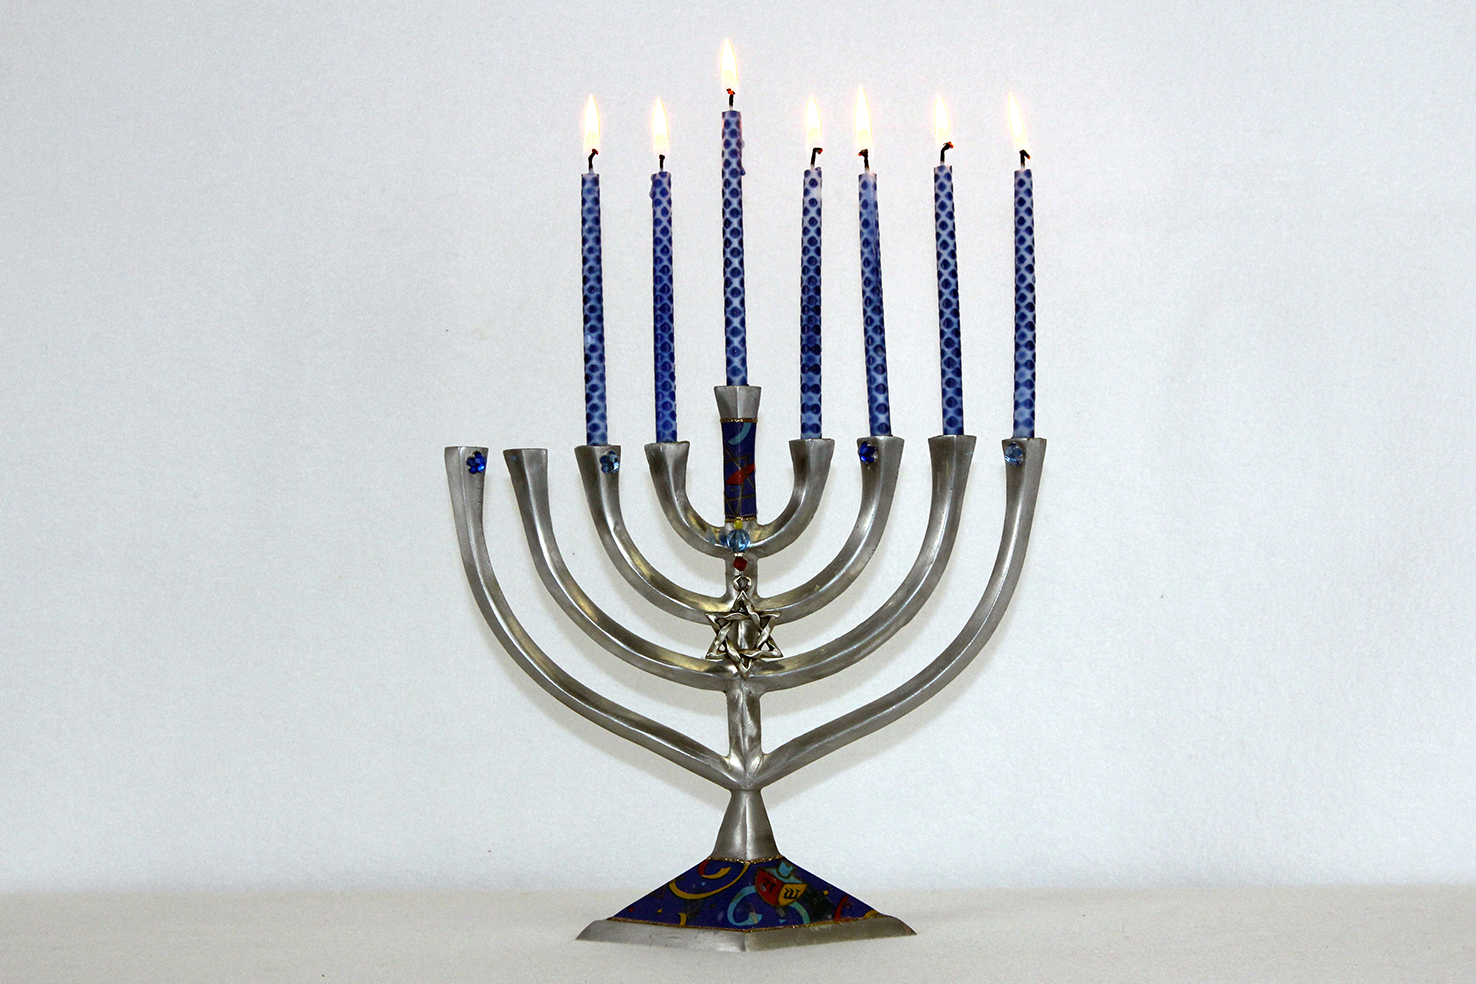 Families celebrate by lighting candles on a menorah throughout Hanukkah.